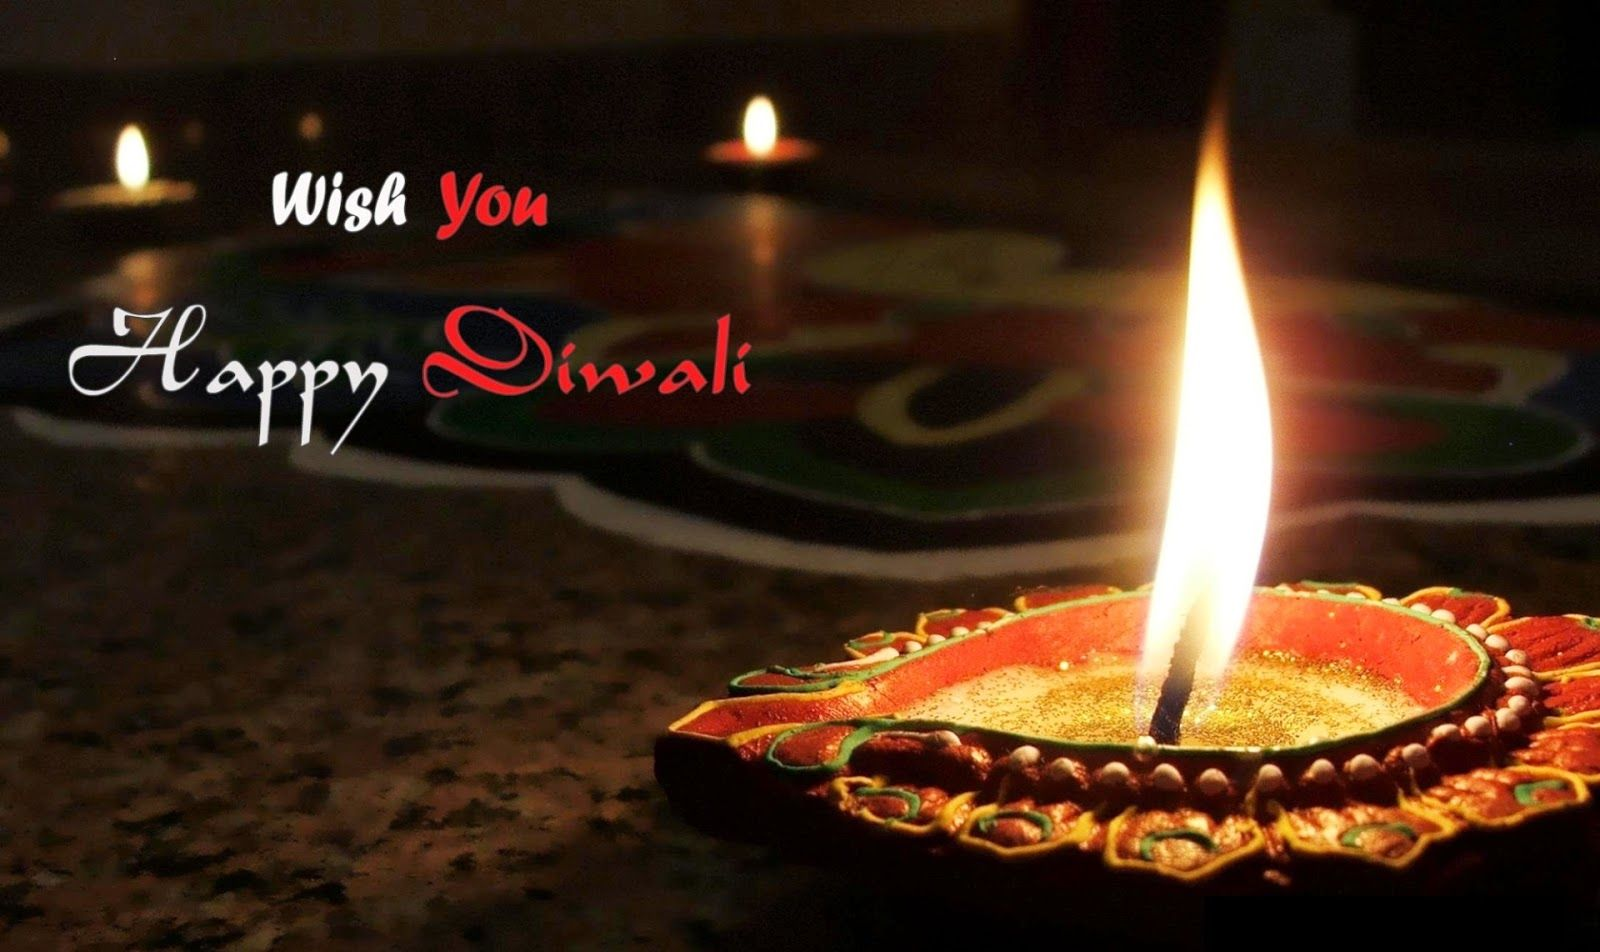 Free happy diwali message for share on whatsapp facebook to friends free happy diwali message for share on whatsapp facebook to friends http m4hsunfo